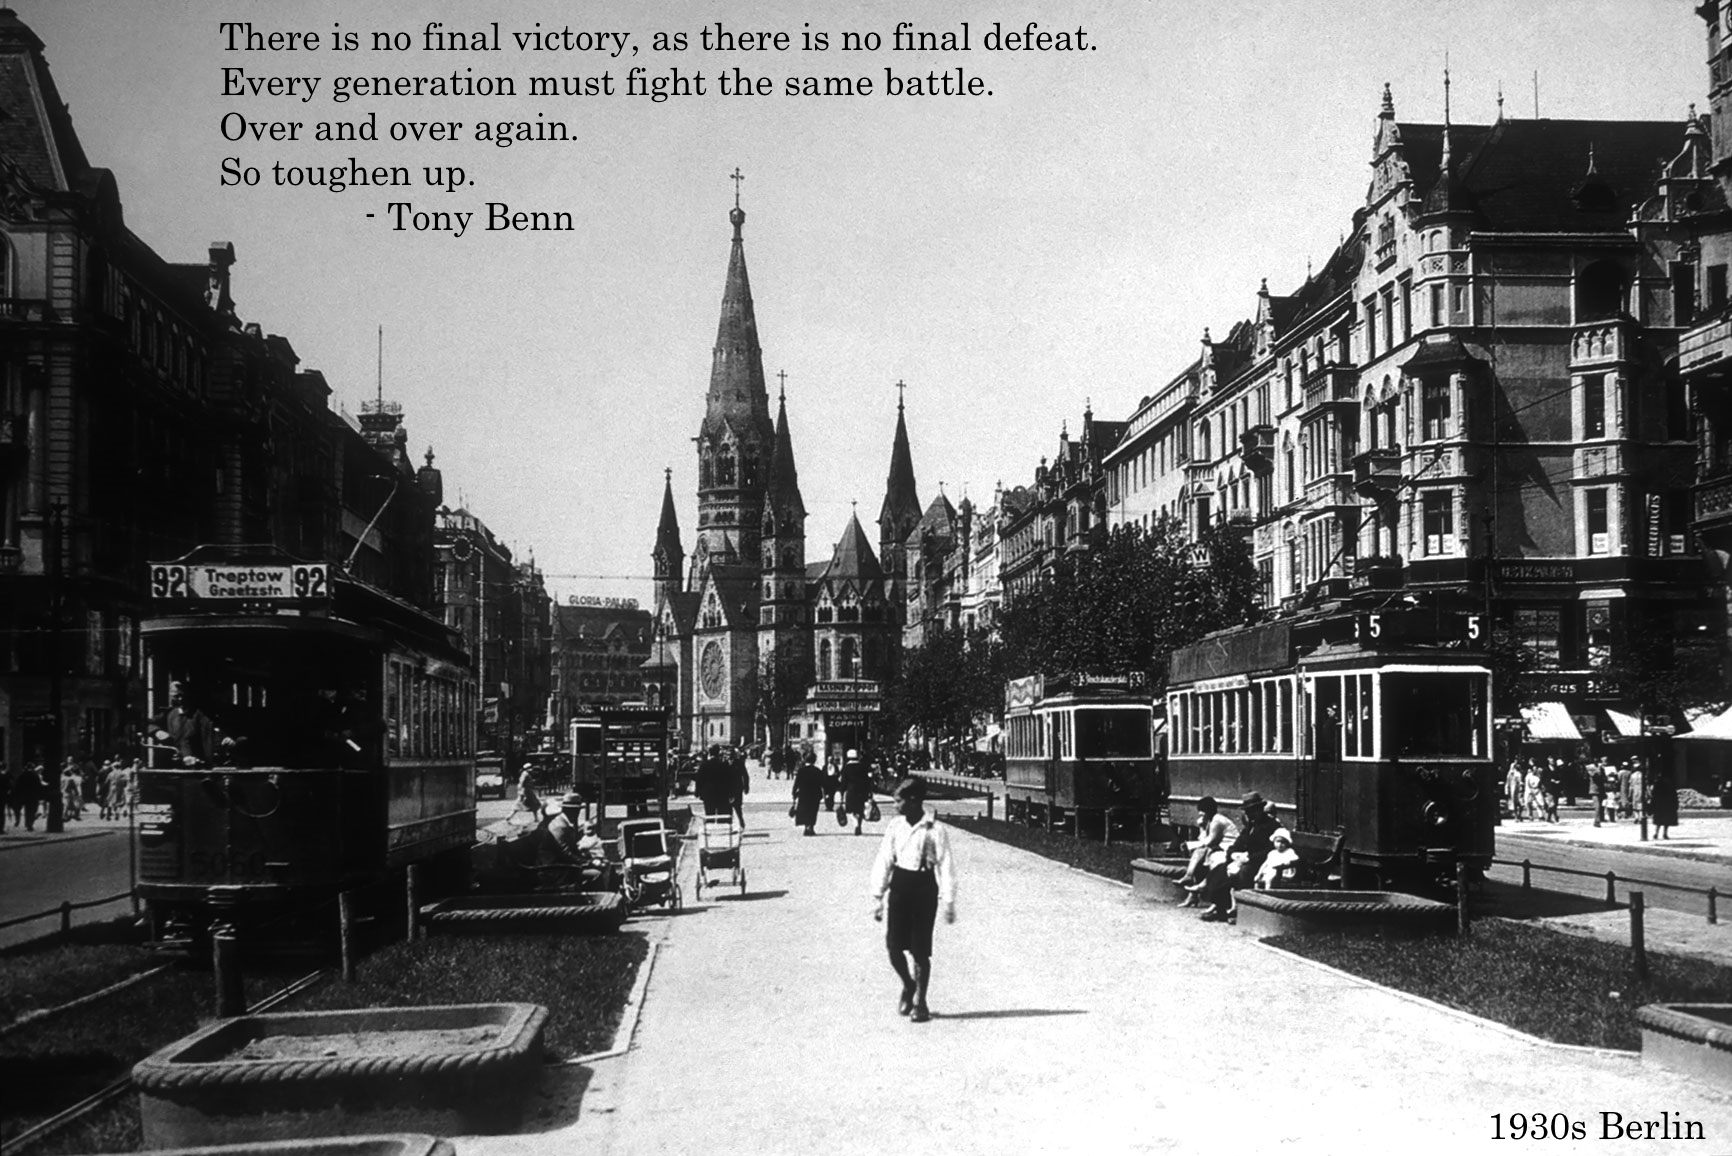 [Image] No Final Victory